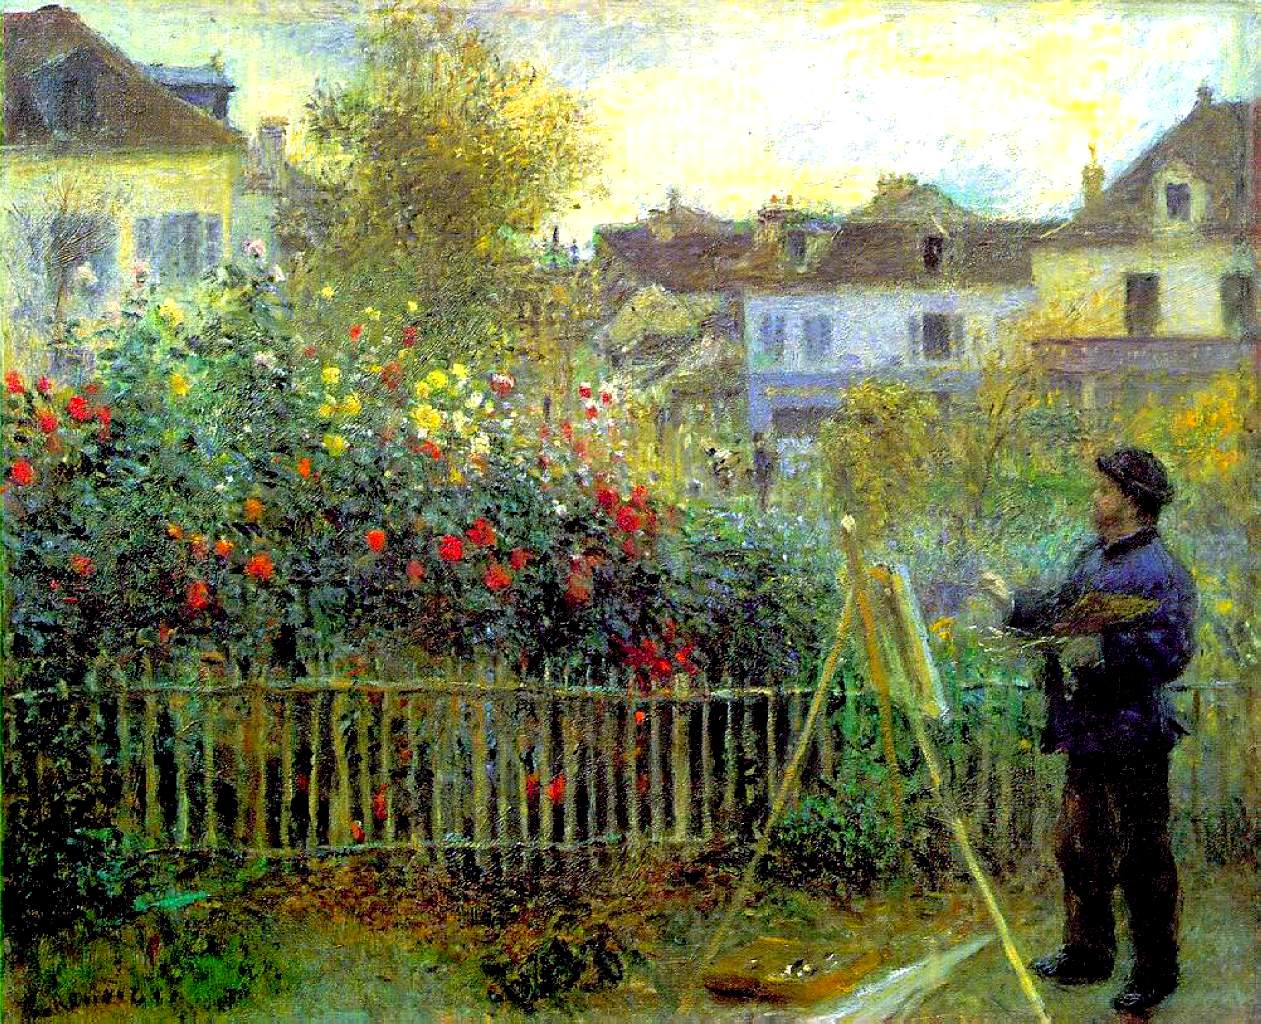 Monet painting in his garden at argenteuil 1873 pierre auguste renoir - Jardin de maison argenteuil ...